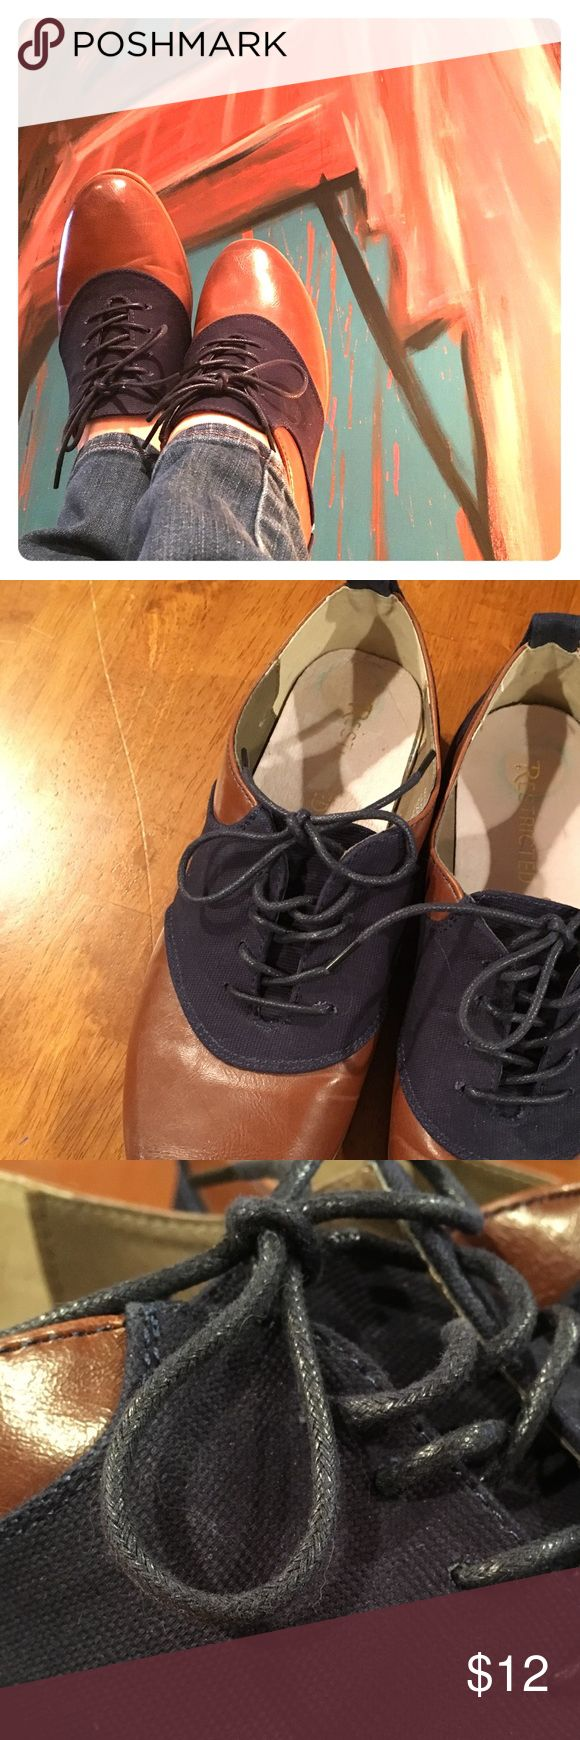 Brown & Navy Saddle Oxfords This ad is for an adorable pair of ladies size 8 saddle Oxford shoes.  Brown with navy corduroy and shoestrings.   Gently worn in great condition.  Fits true size 8 Restricted Shoes Flats & Loafers